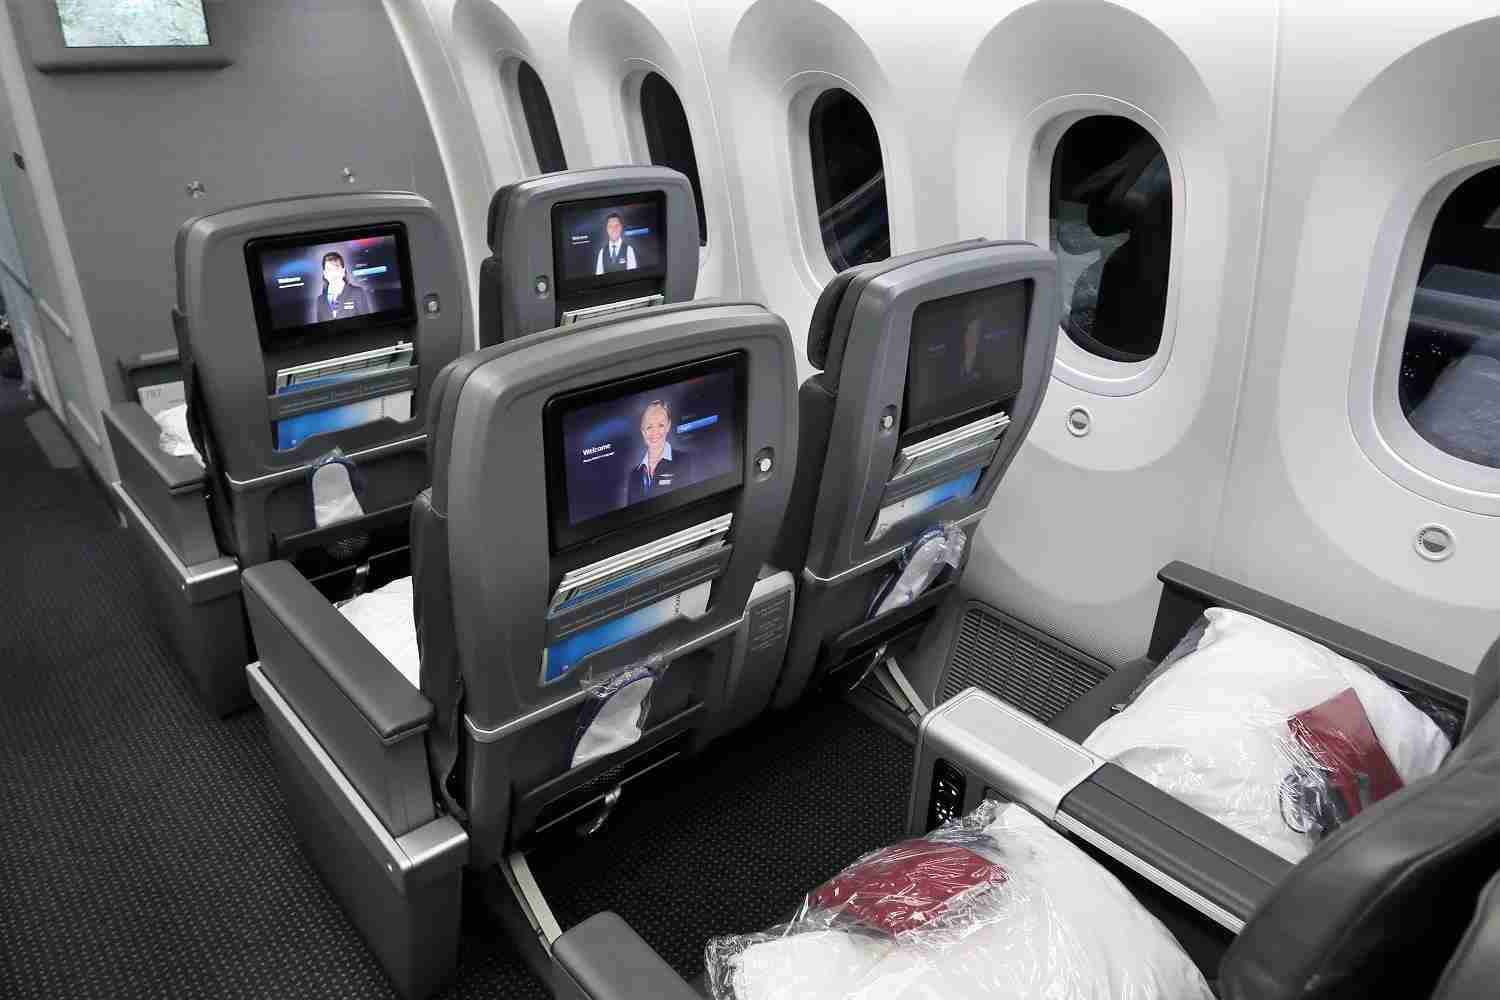 Photo of American Airlines 787-9 premium economy by JT Genter / The Points Guy.